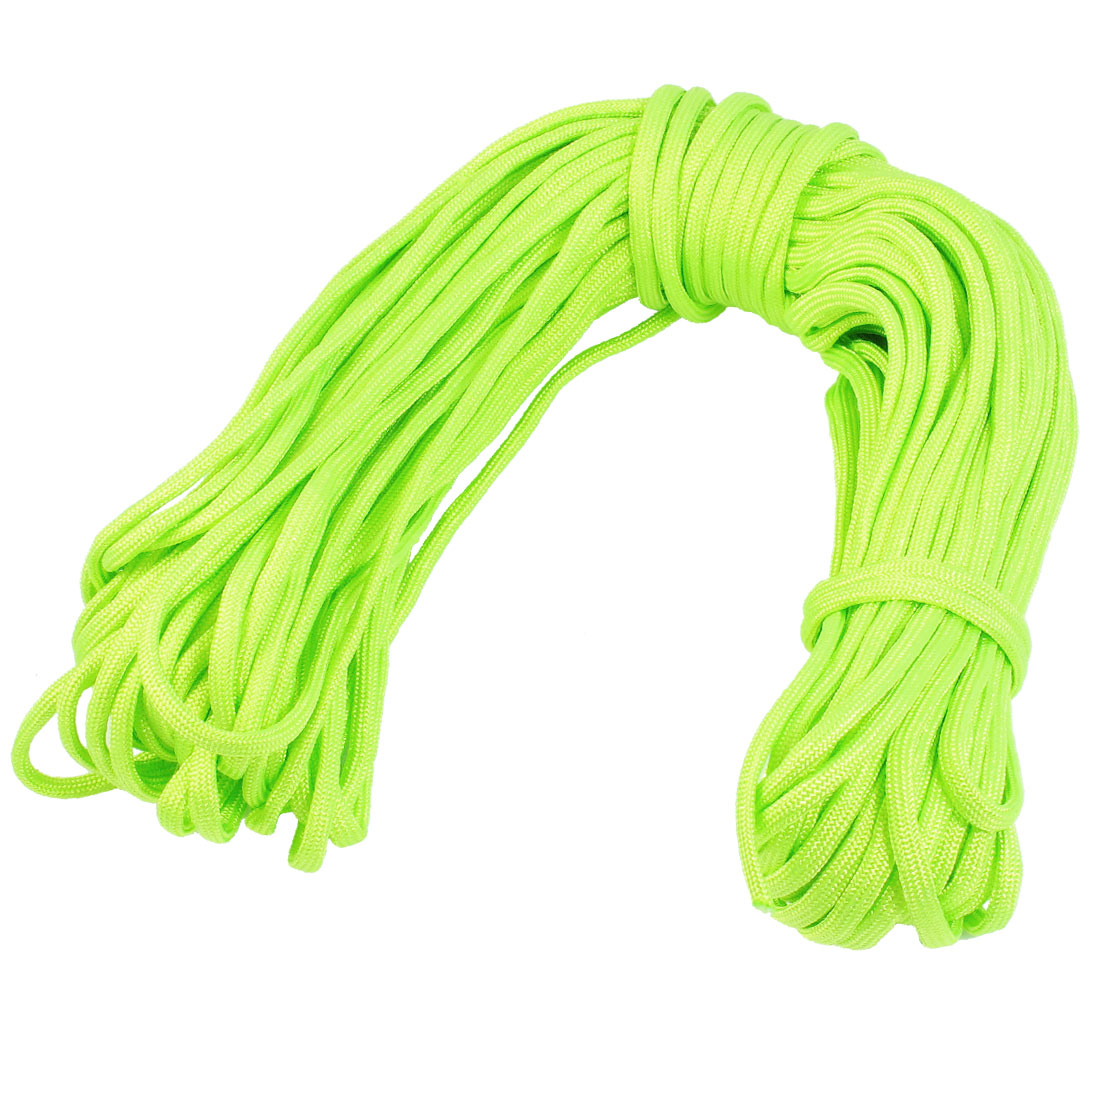 Outdoor Activites Practcial 4mm Dia Bright Green Nylon Survival String 100Ft